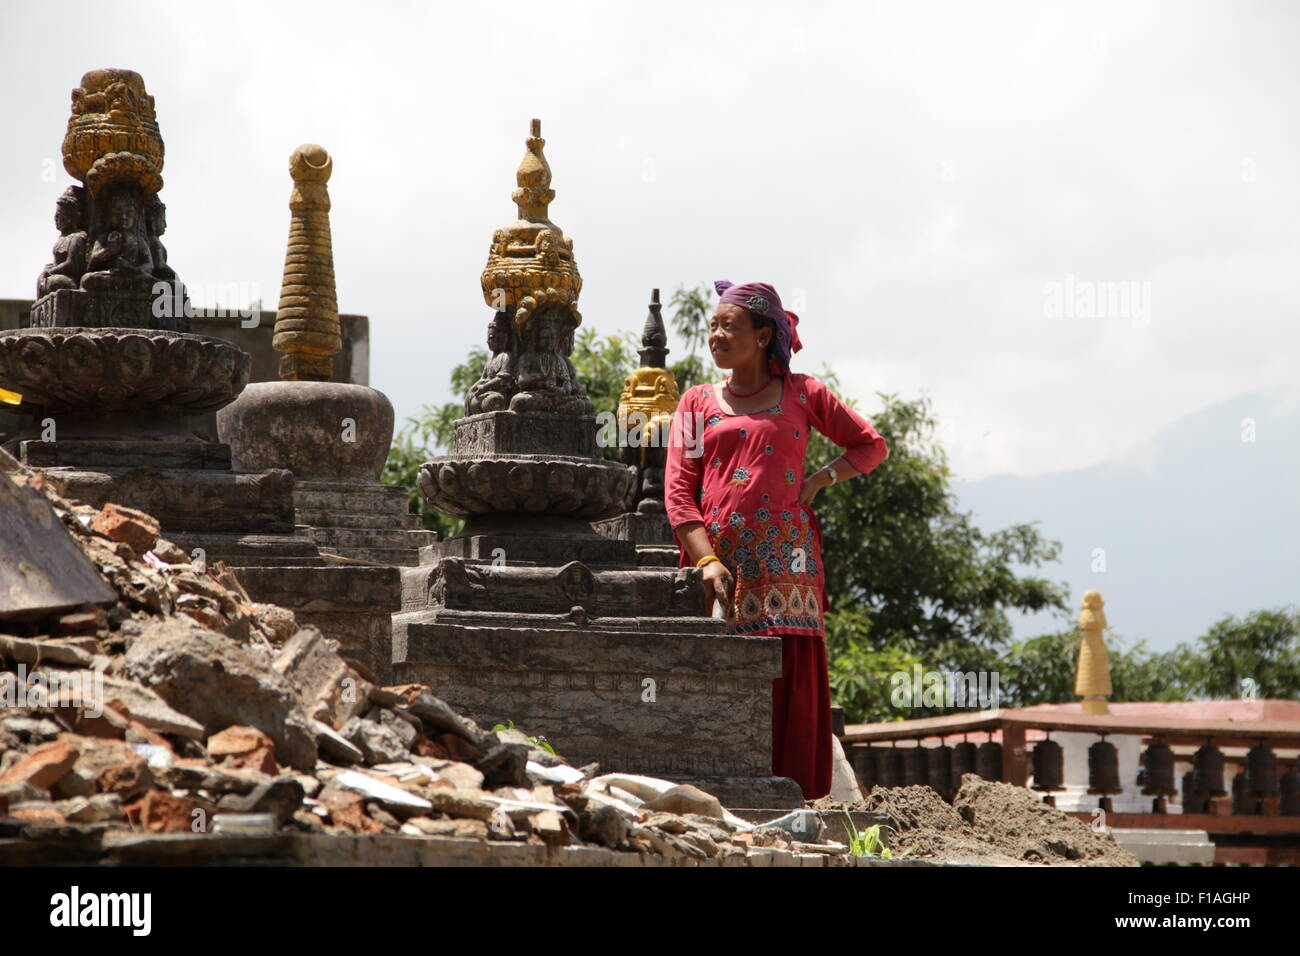 woman rebuilding a temple in Kathmandu, Nepal after the earthquake in 2015 Stock Photo